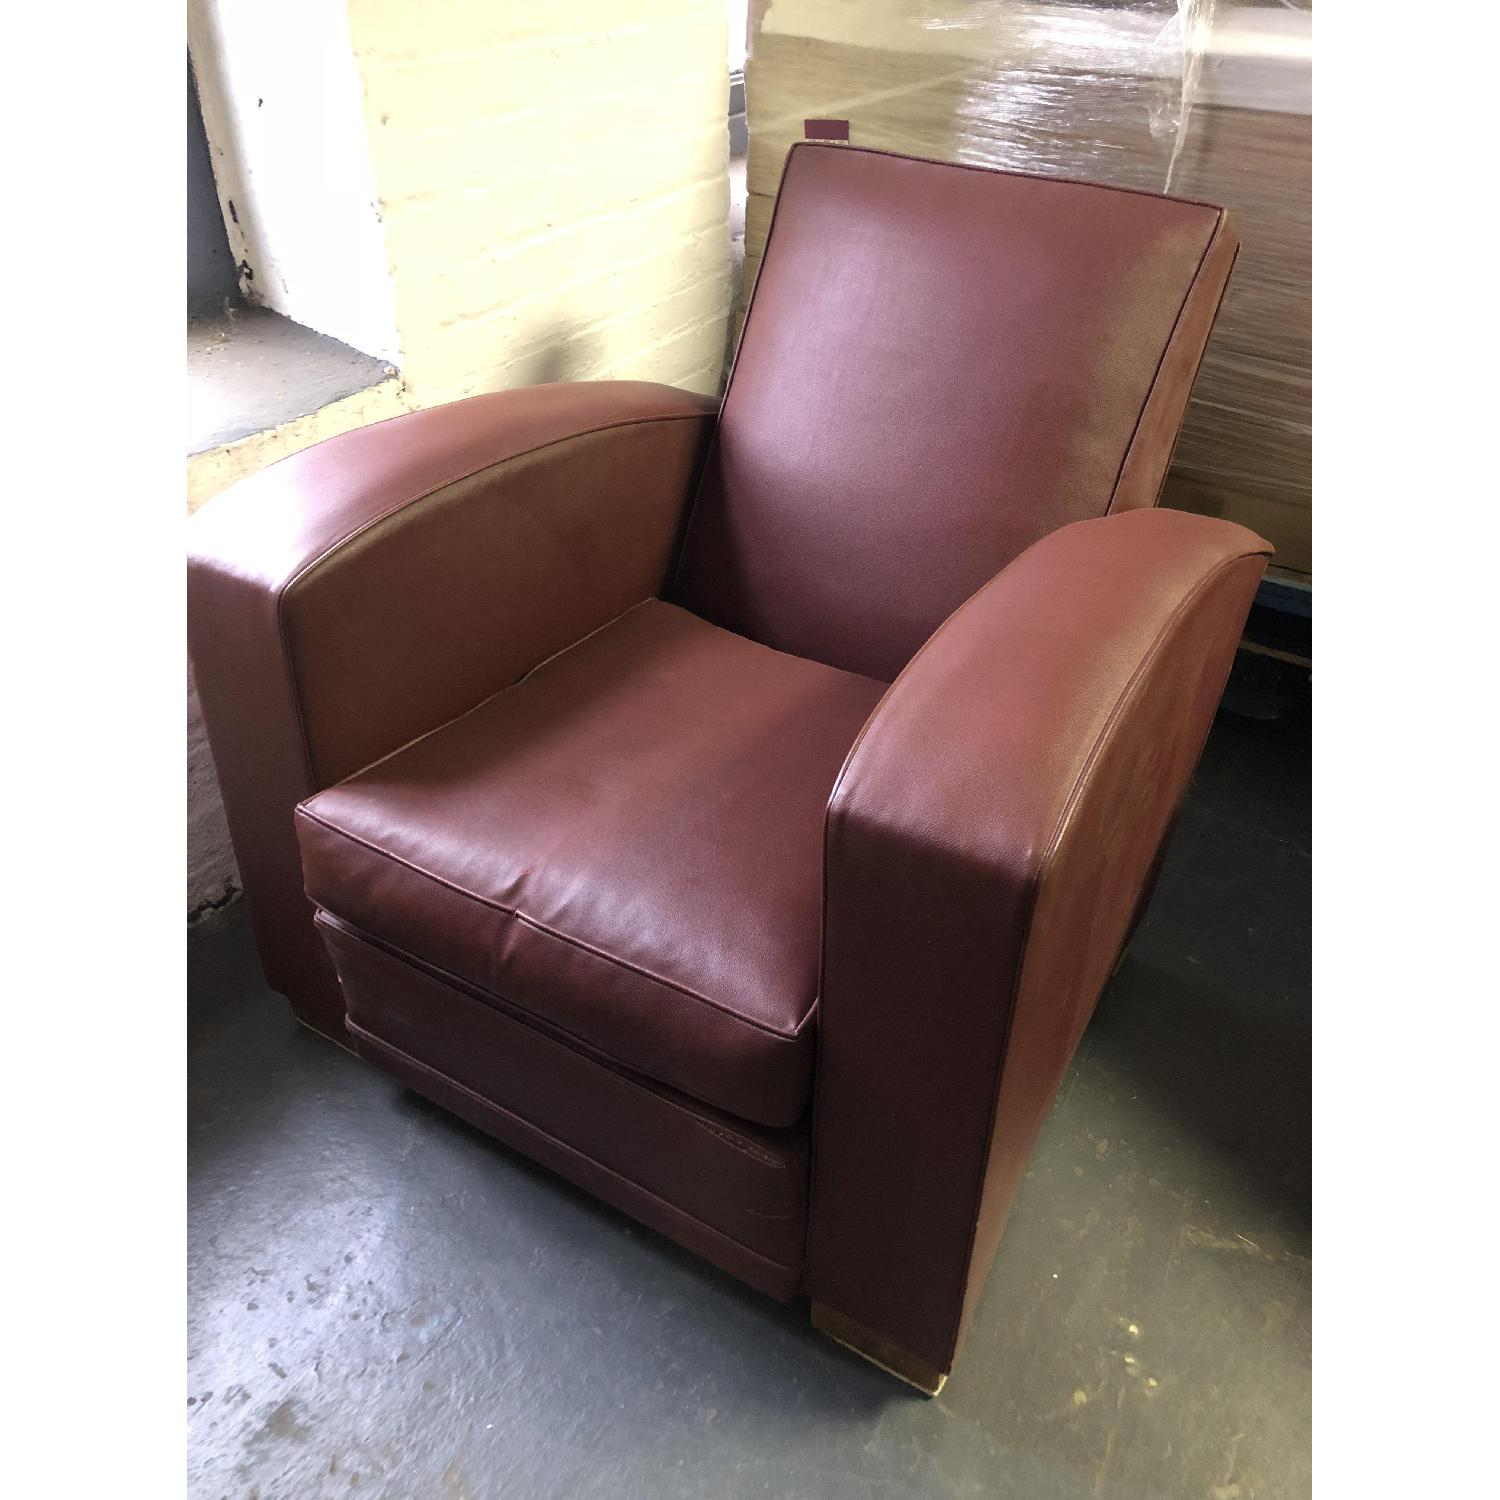 Vintage French Deco Club Chair - image-1